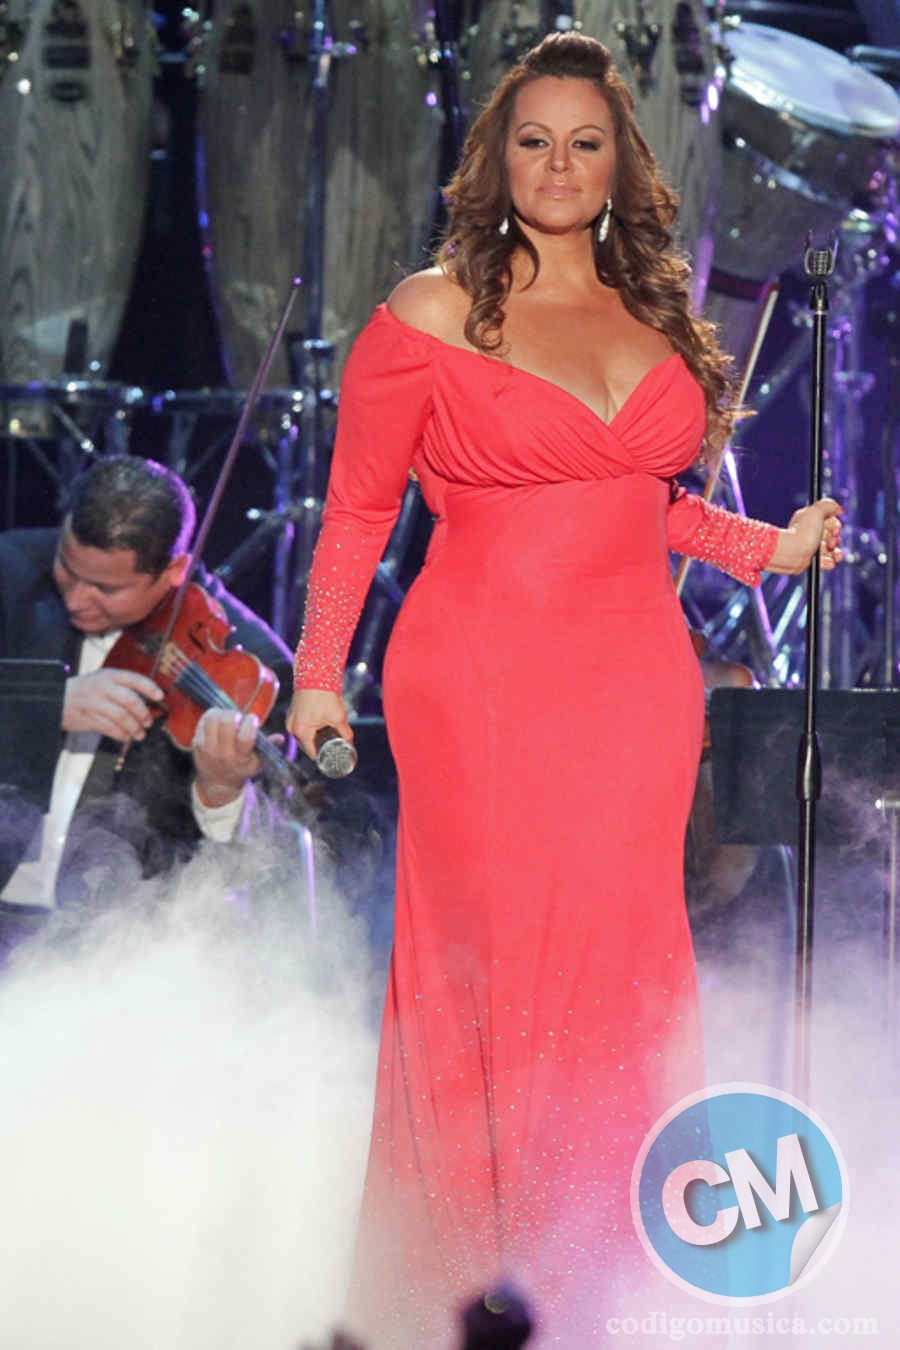 MIAMI, FL - APRIL 26: Jenni Rivera performs during Billboard Latin Music Awards 2012  at Bank United Center on April 26, 2012 in Miami, Florida. (Photo by John Parra/Getty Images)